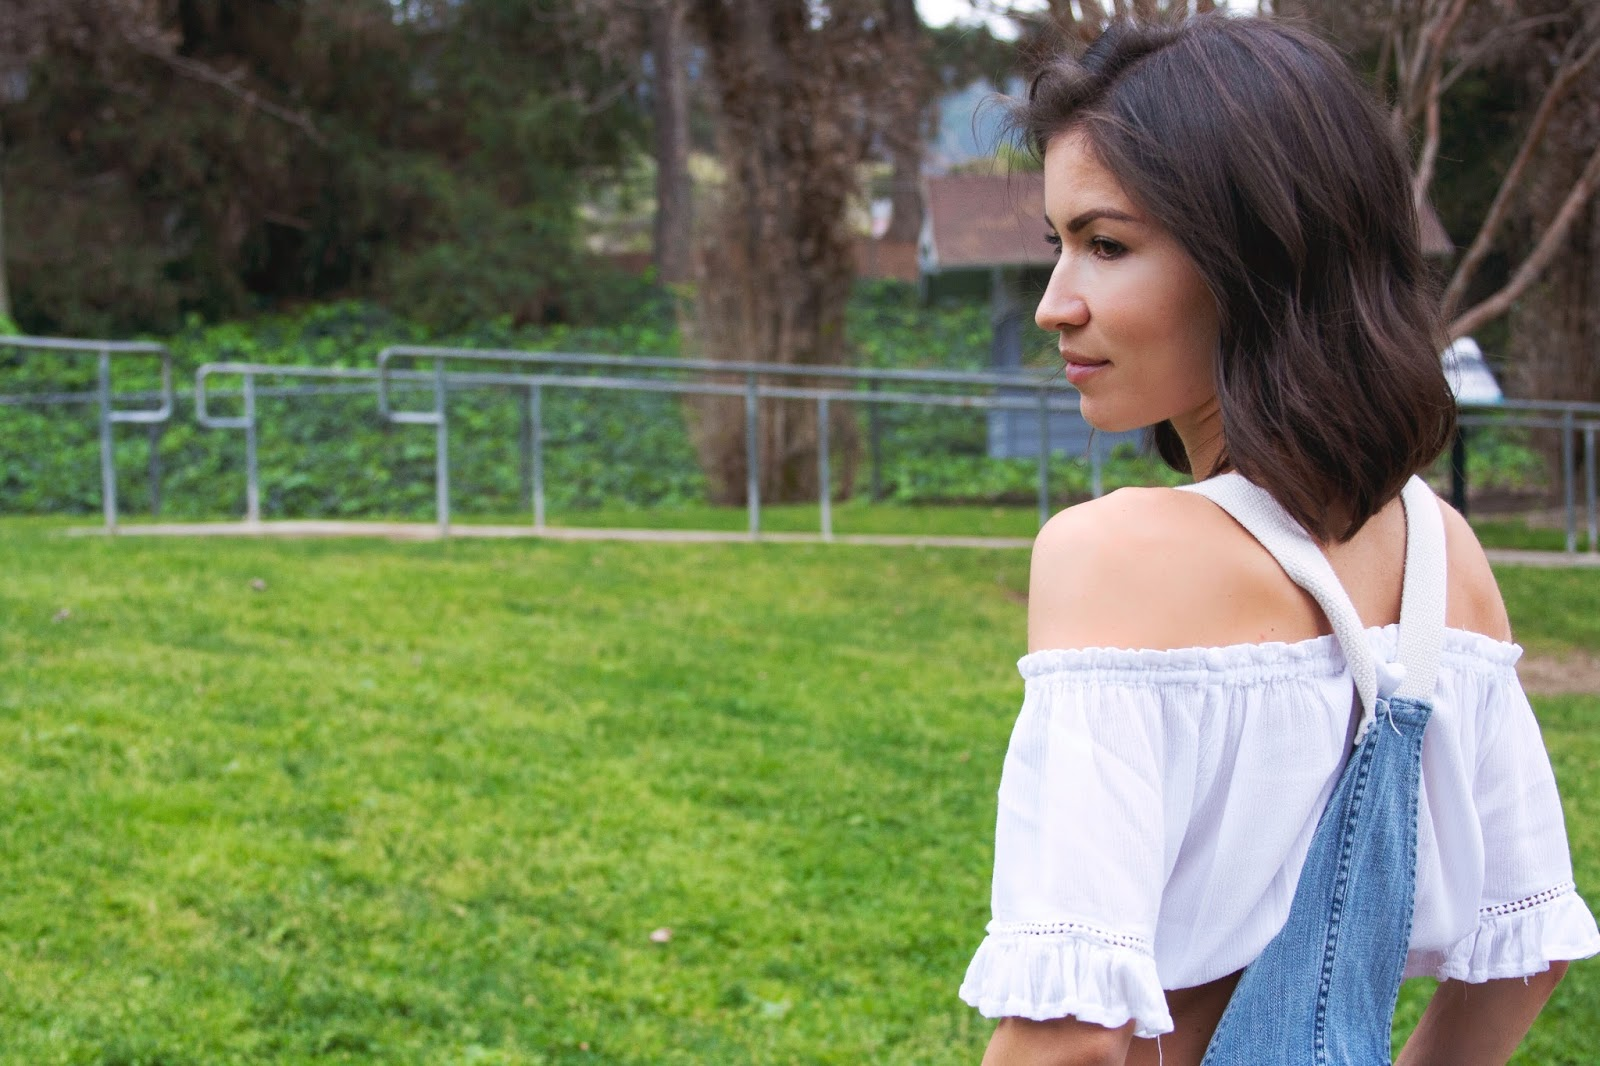 off the shoulder tops are so romantic!